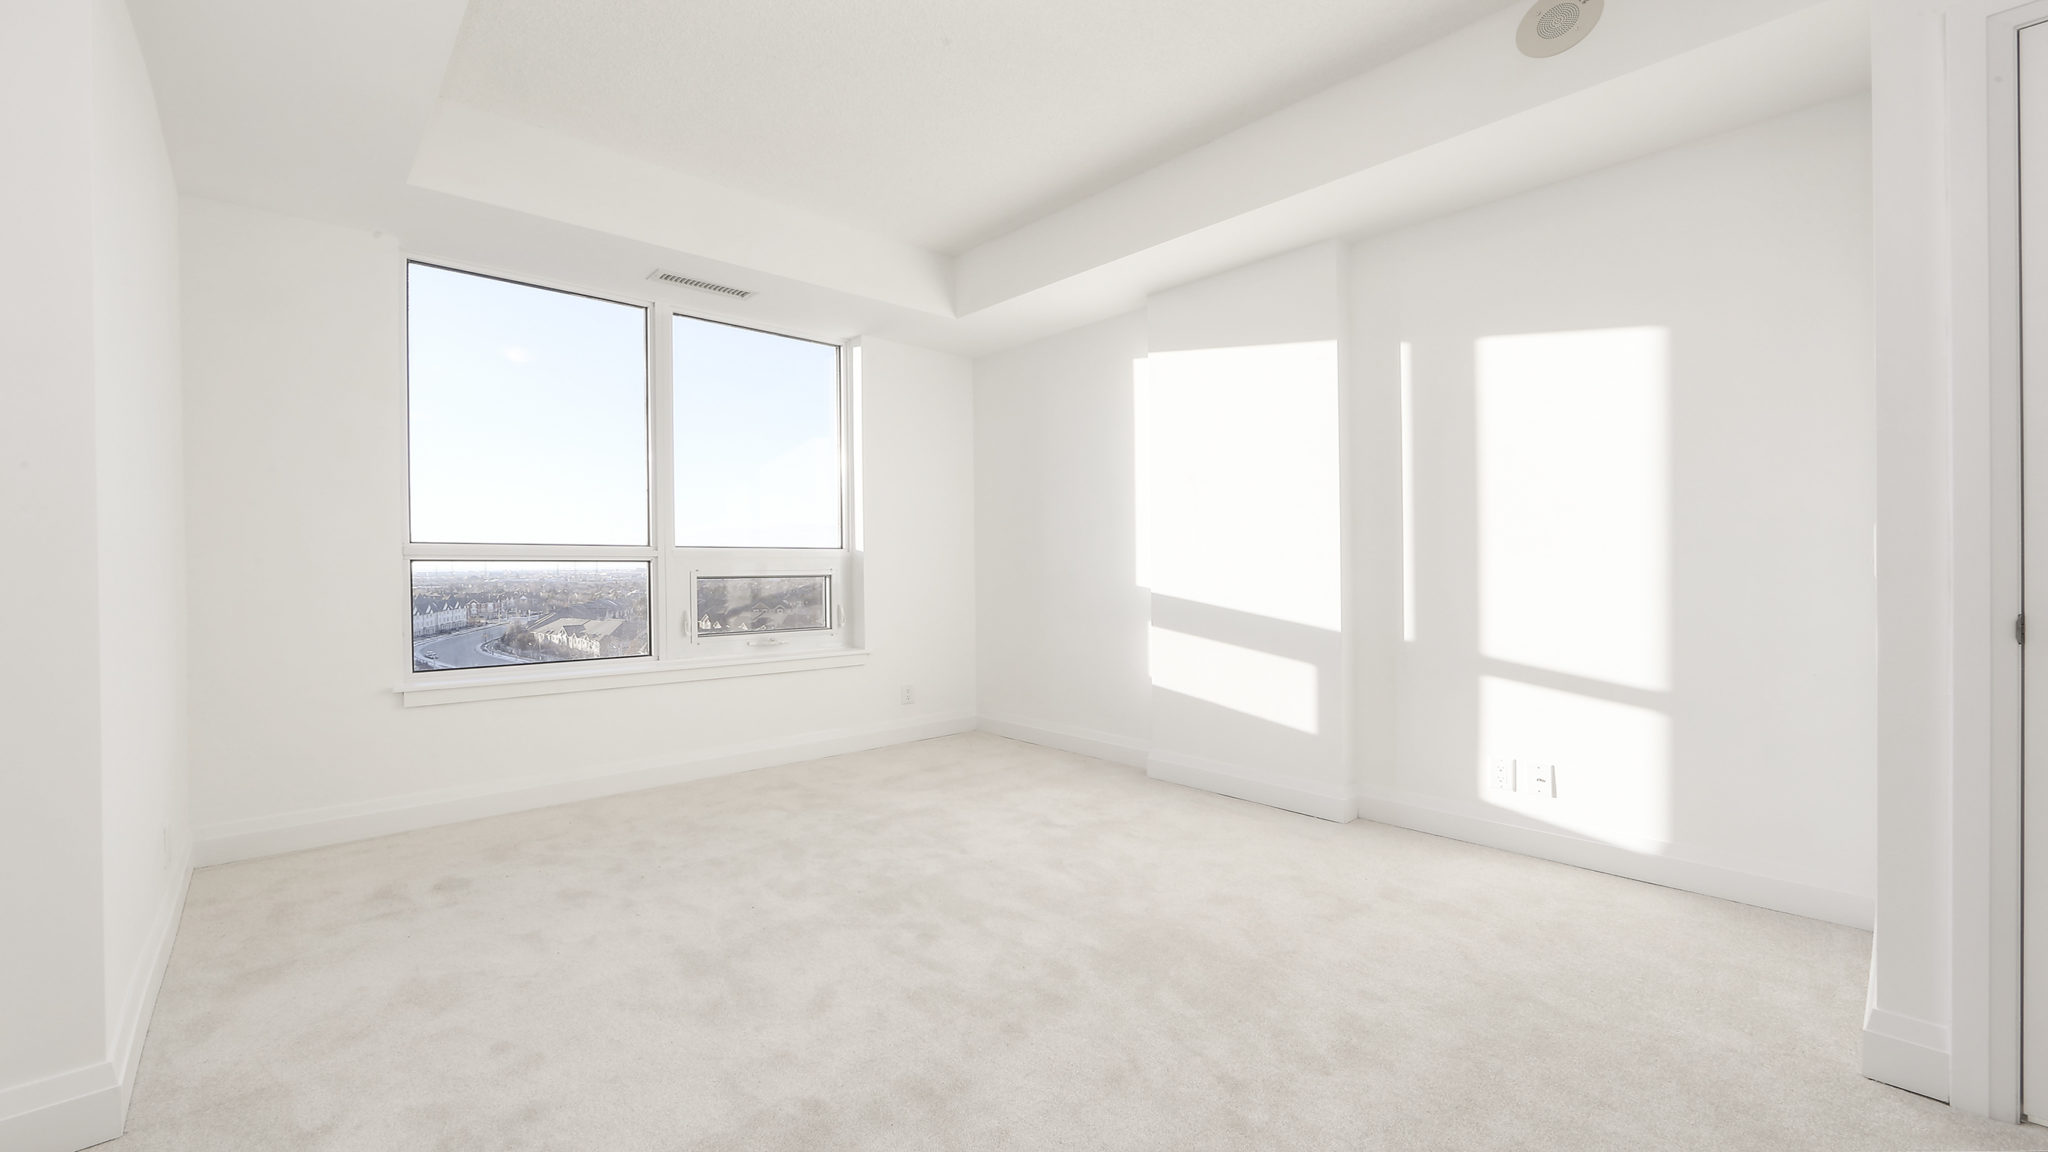 Bedroom photo showing windows and sunlight. The white carpet almost blends into the walls.